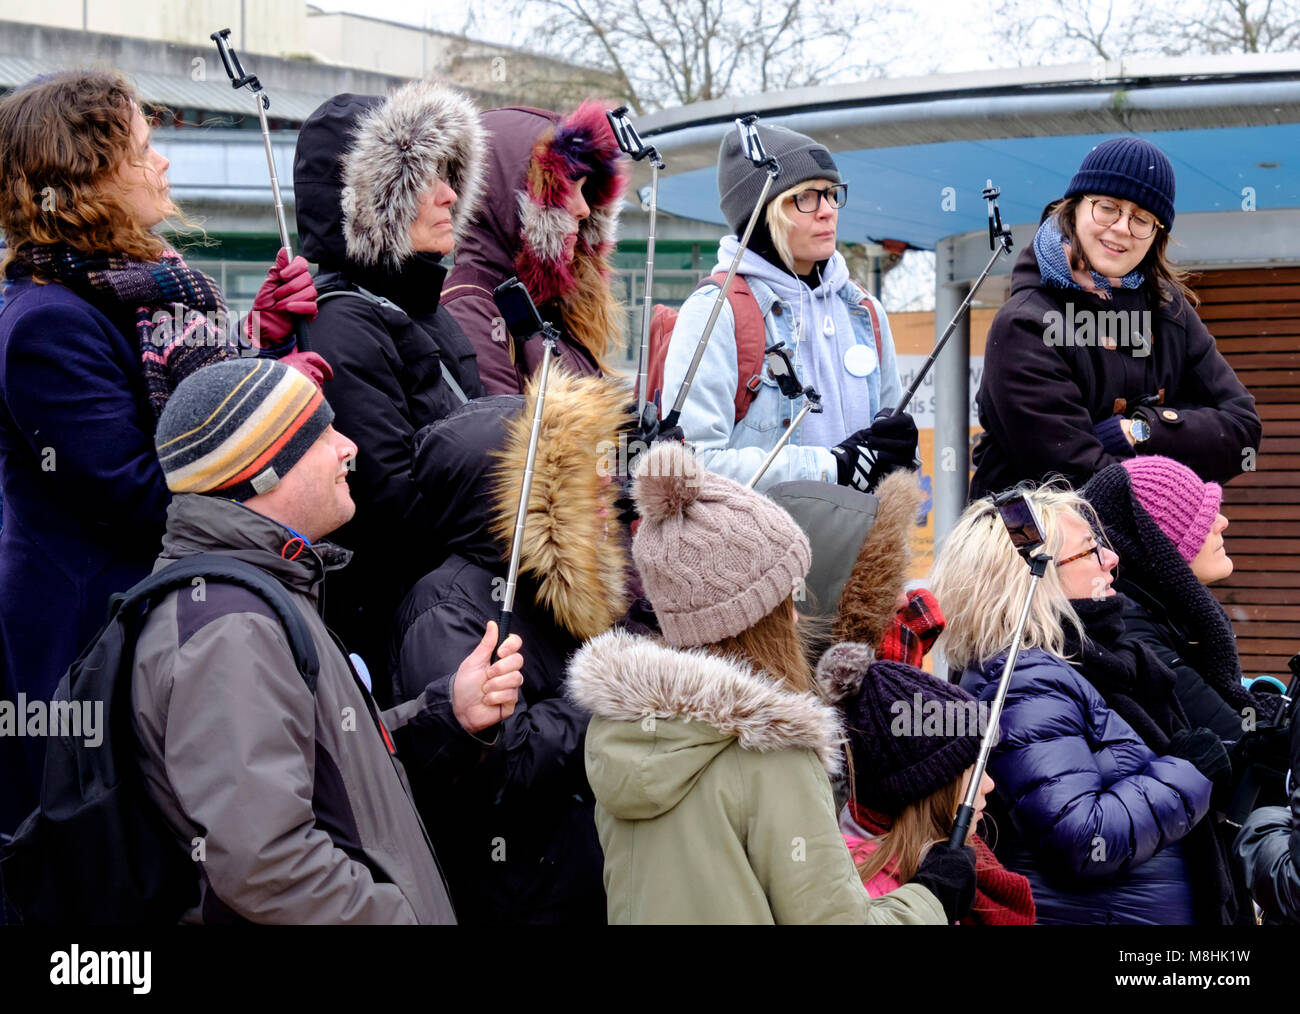 Bristol, UK, 17th March 2018. Next generation Superfast internet connection demonstrated to the public in Bristol. - Stock Image